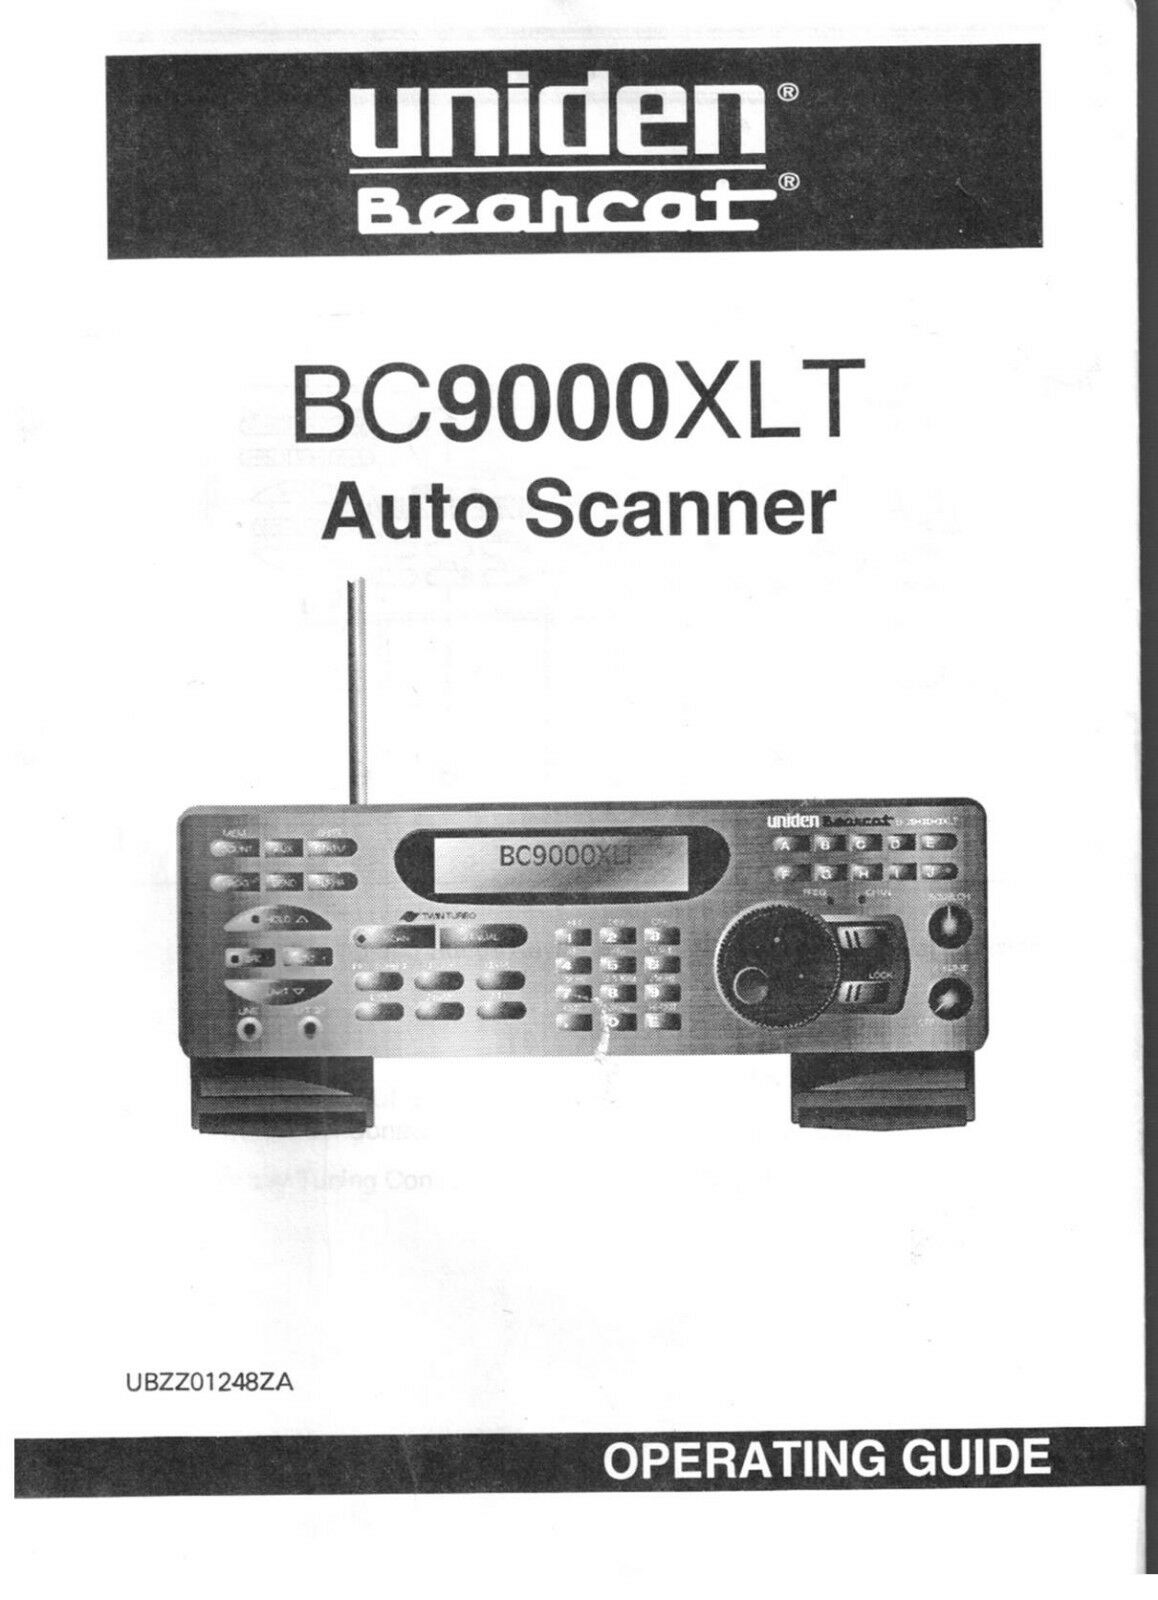 Uniden BC 9000 XLT Bearcat Police Scanner Radio Operating Users Guide Manual  1 of 1Only 1 available See More